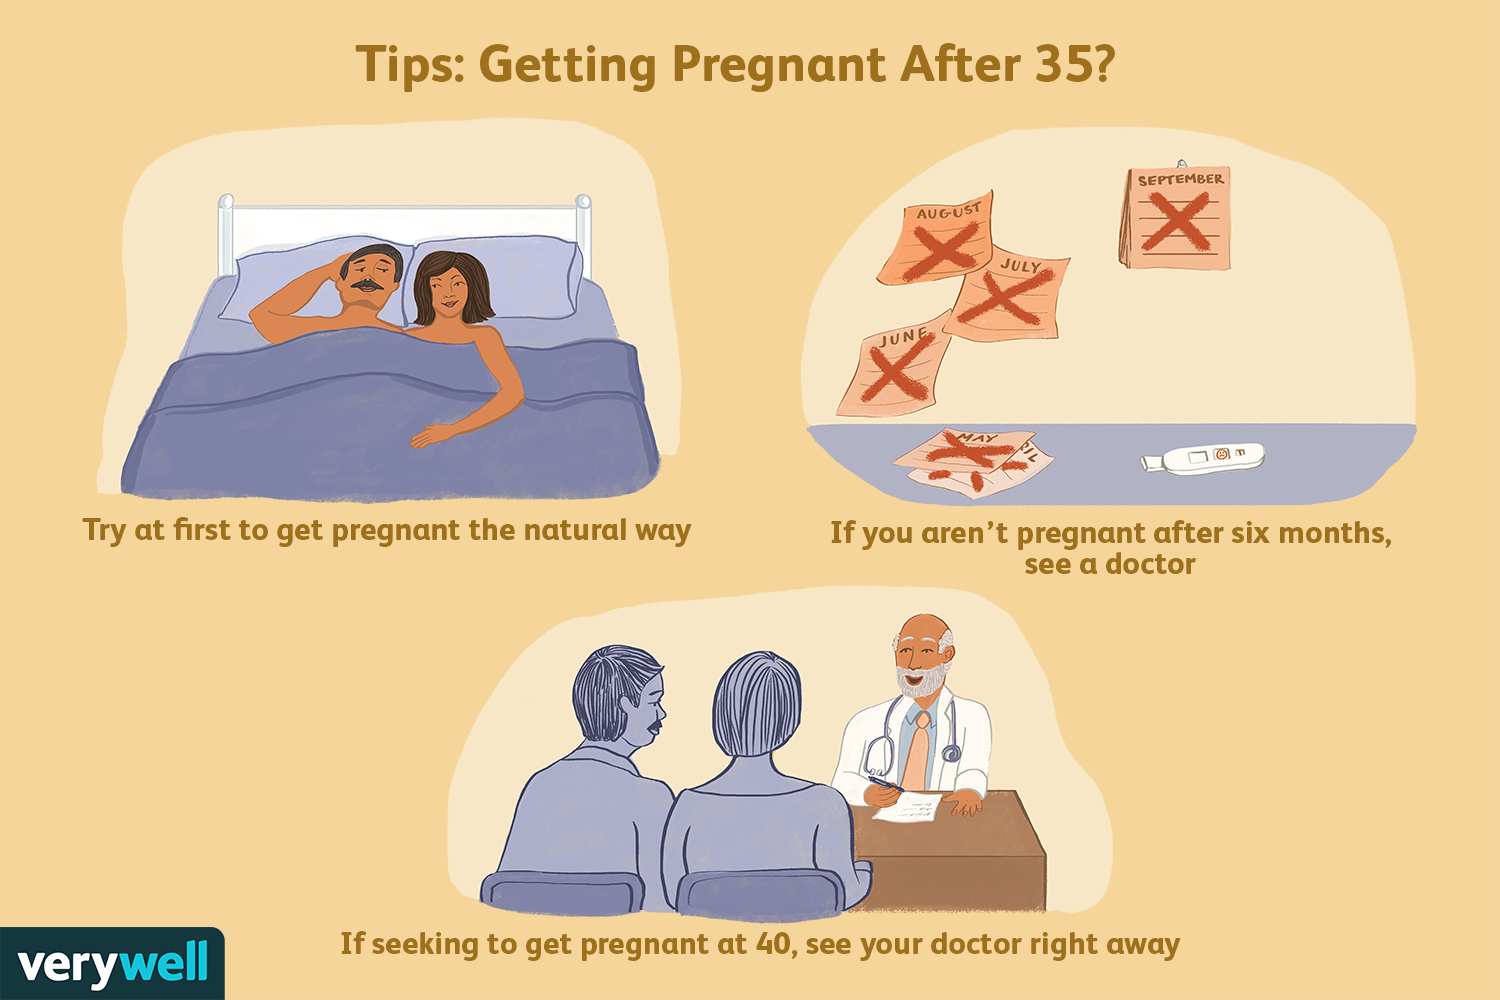 Overview And Help For Getting Pregnant After 35